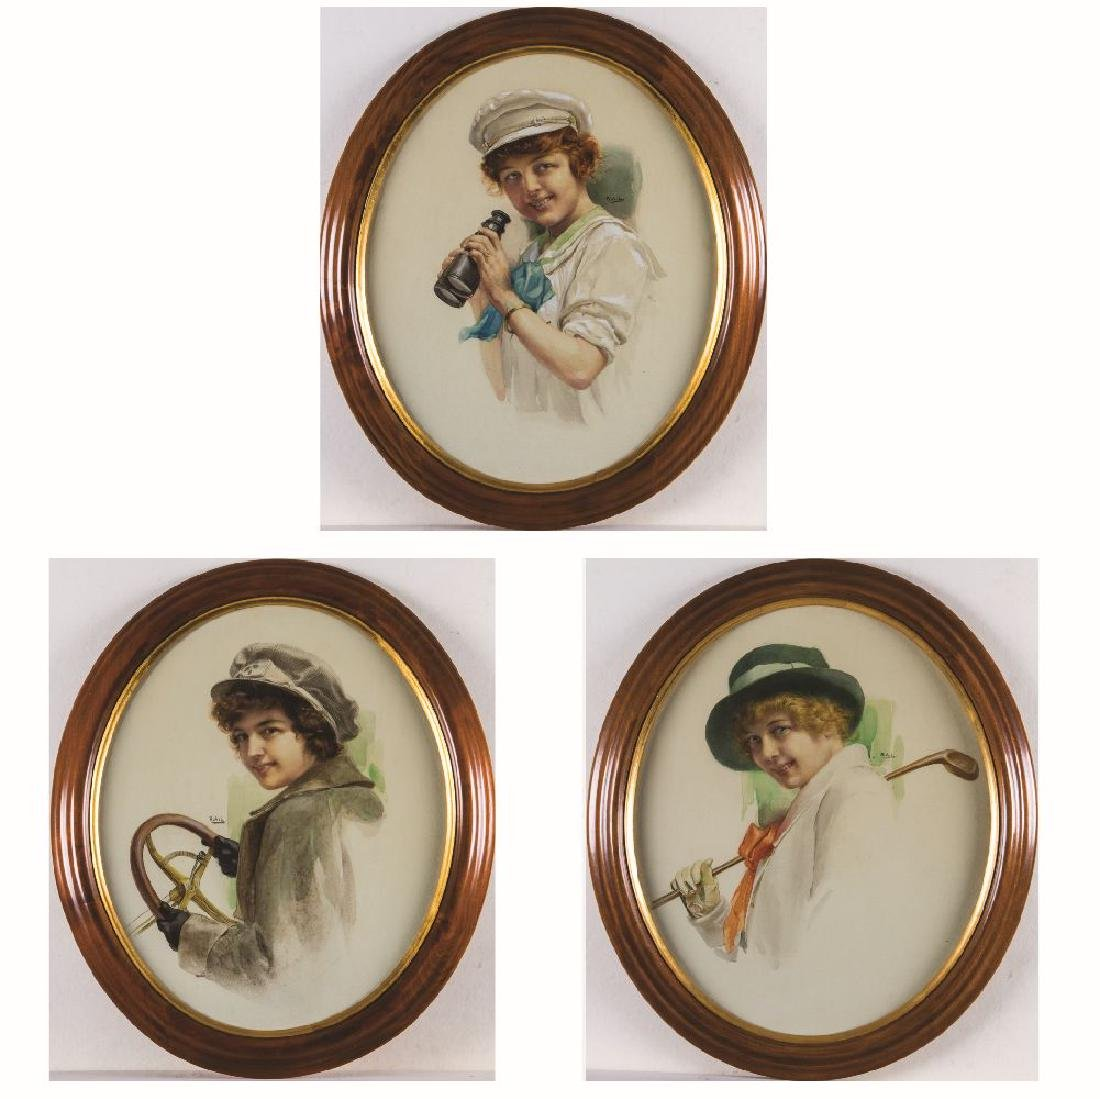 A Group of Three Watercolor Portraits Depicting